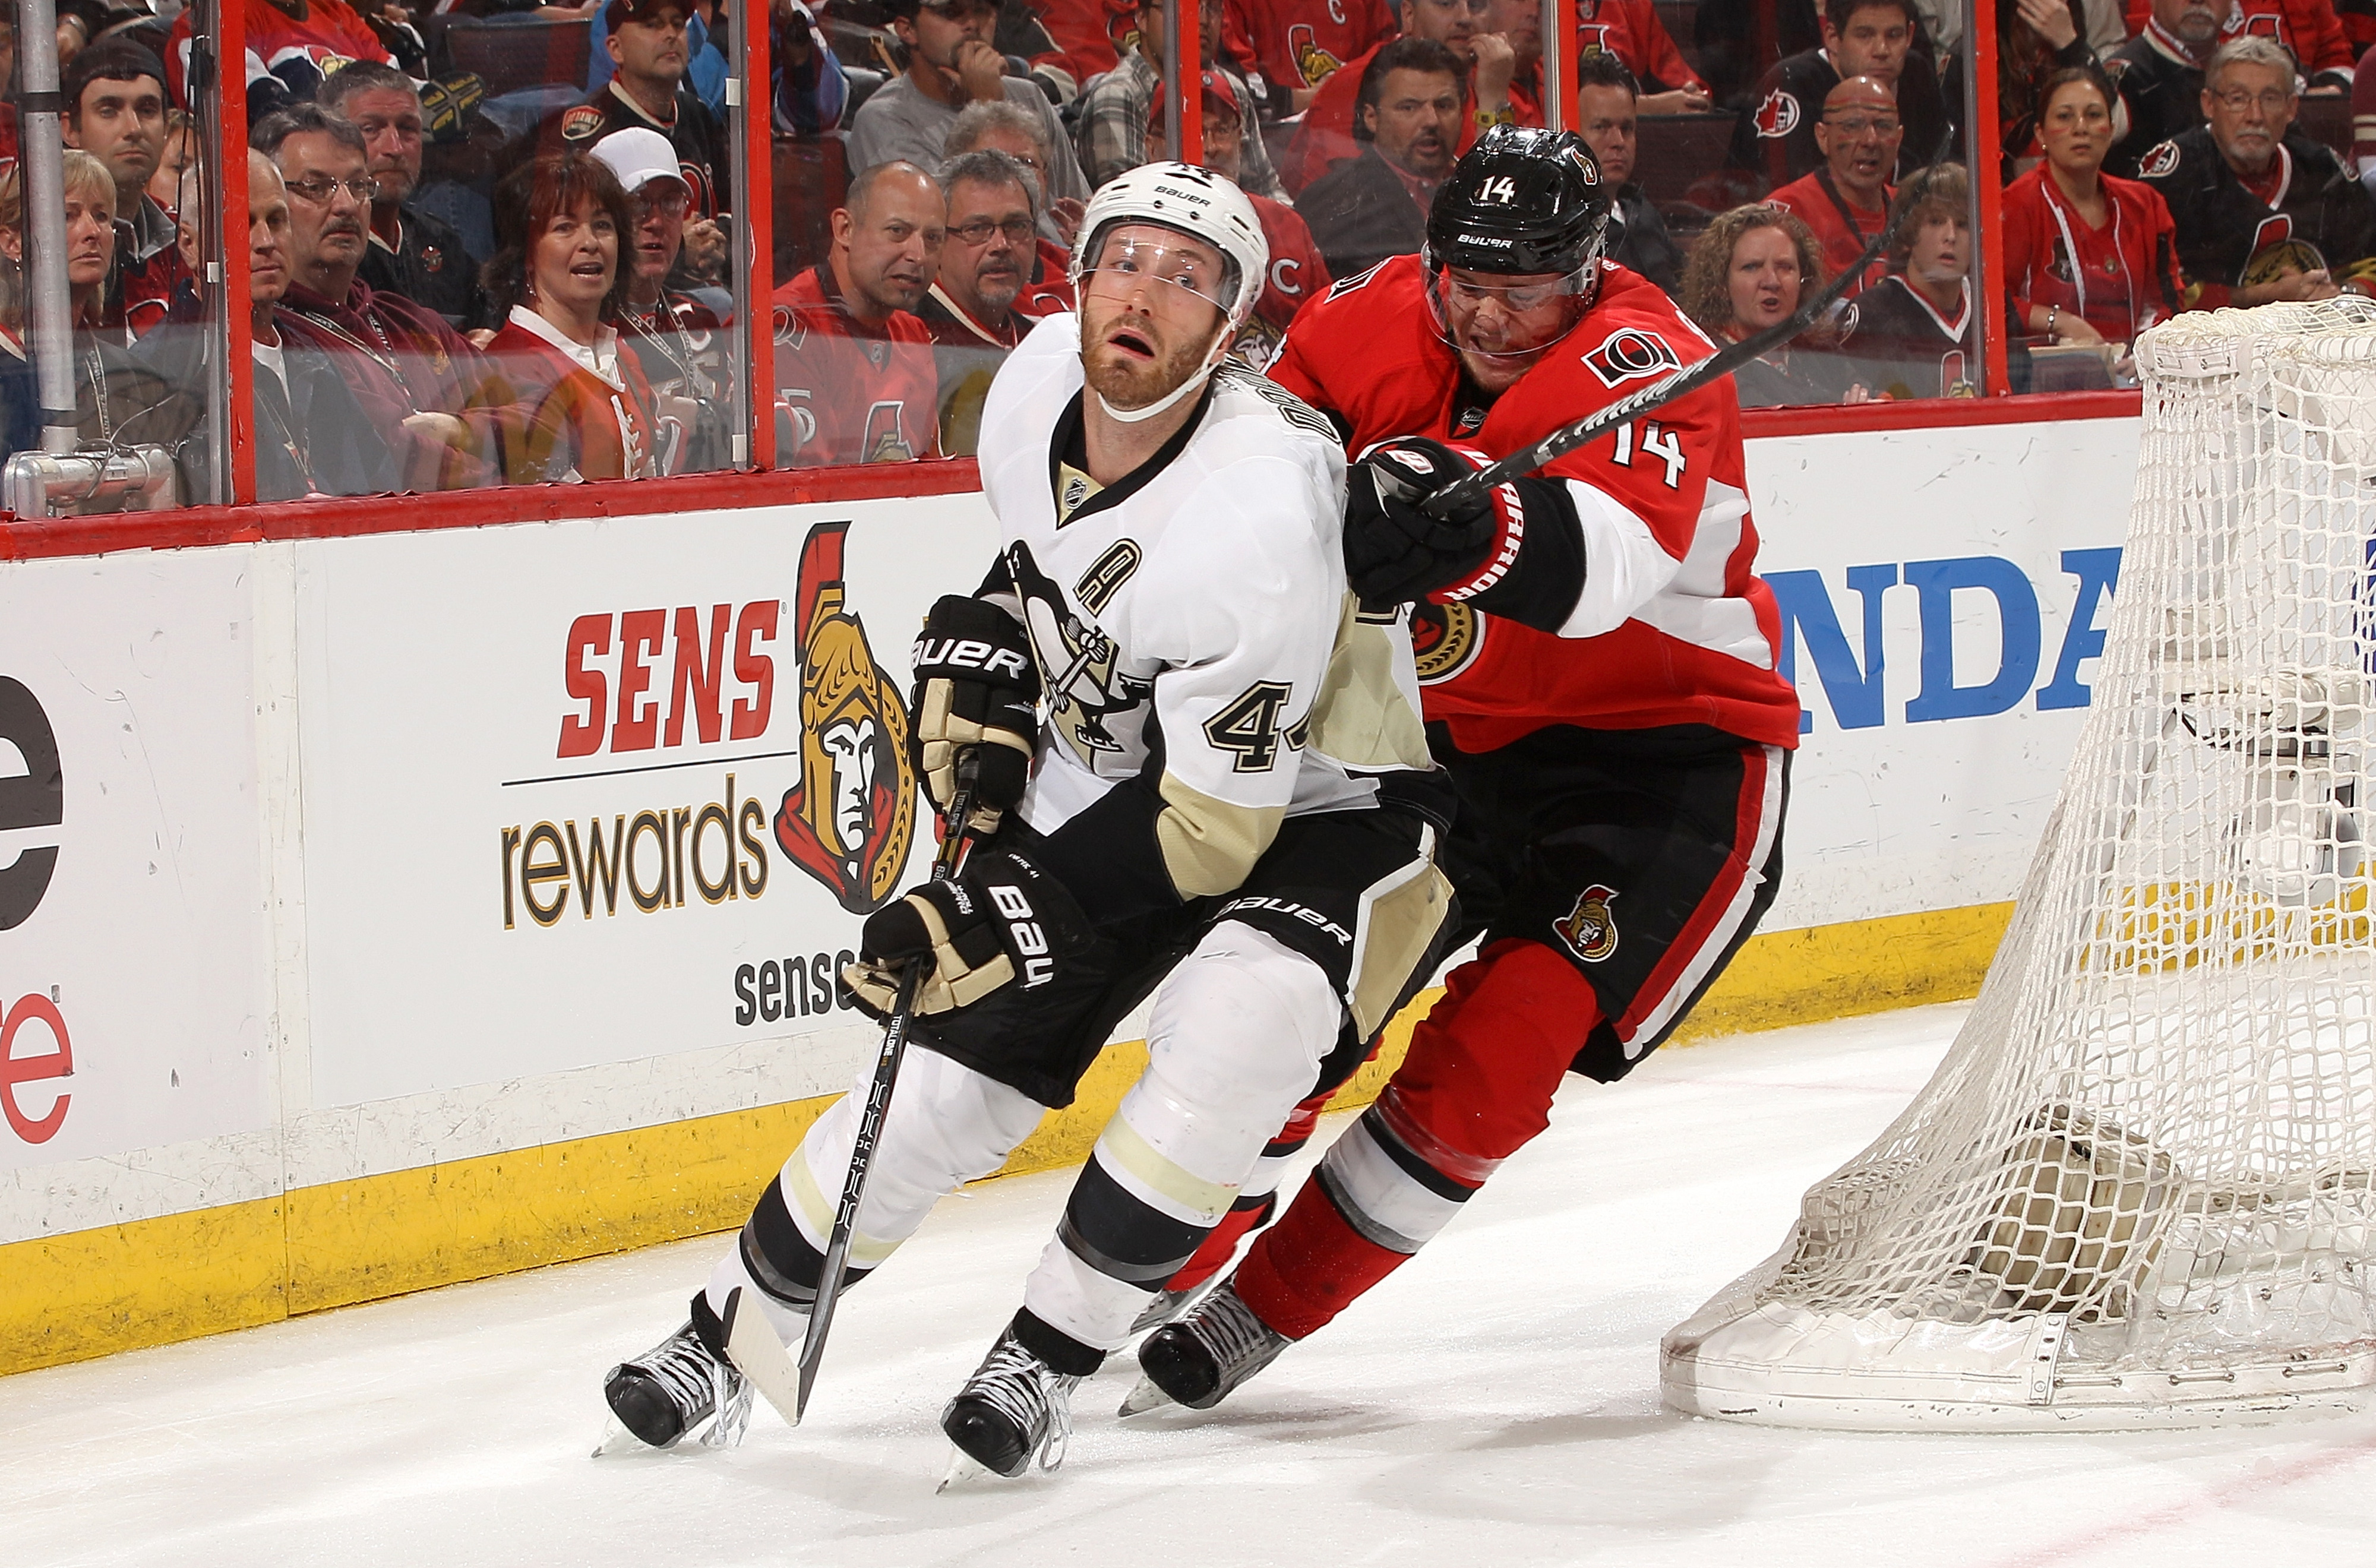 Like Dr. Phil, Colin Greening makes Brooks Orpik reevaluate his life choices.